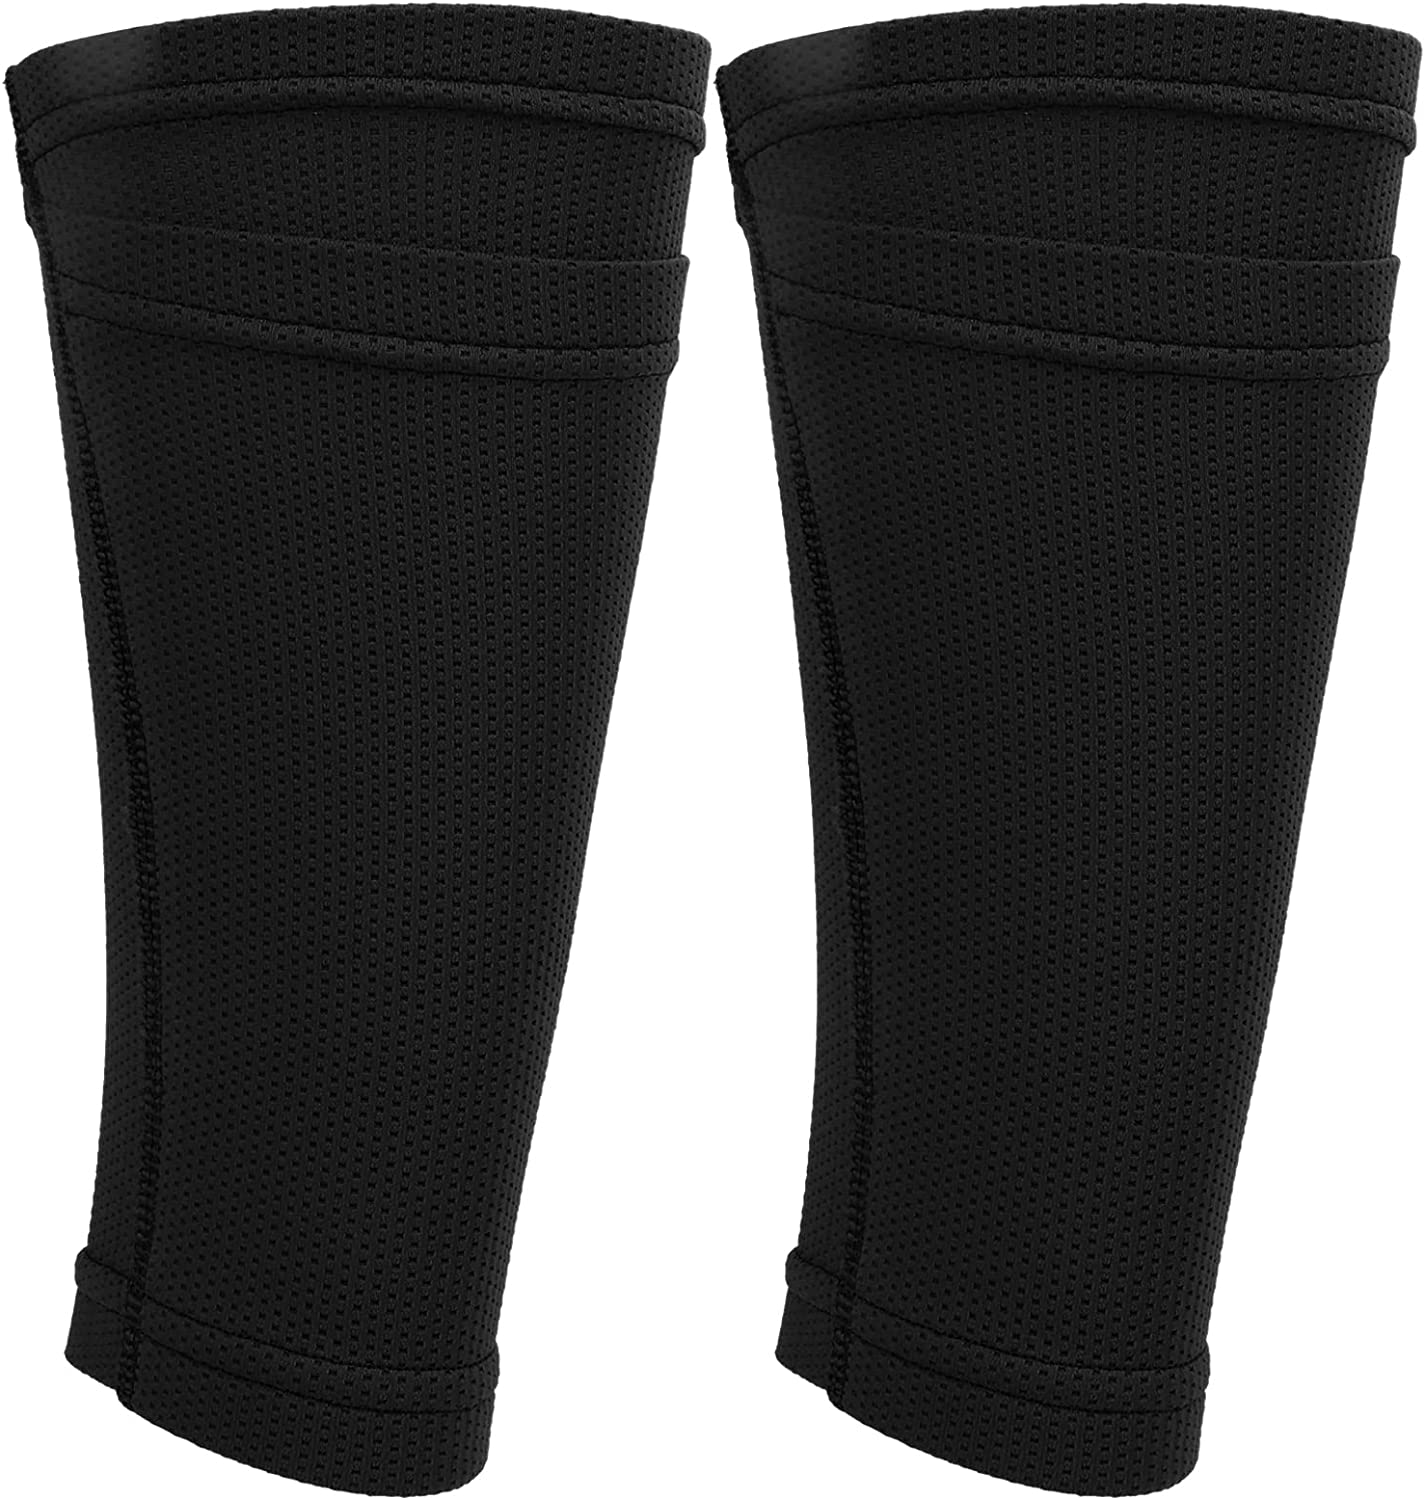 Football Max 74% OFF Shin Limited price Pad Sleeve Training for Guard Socce